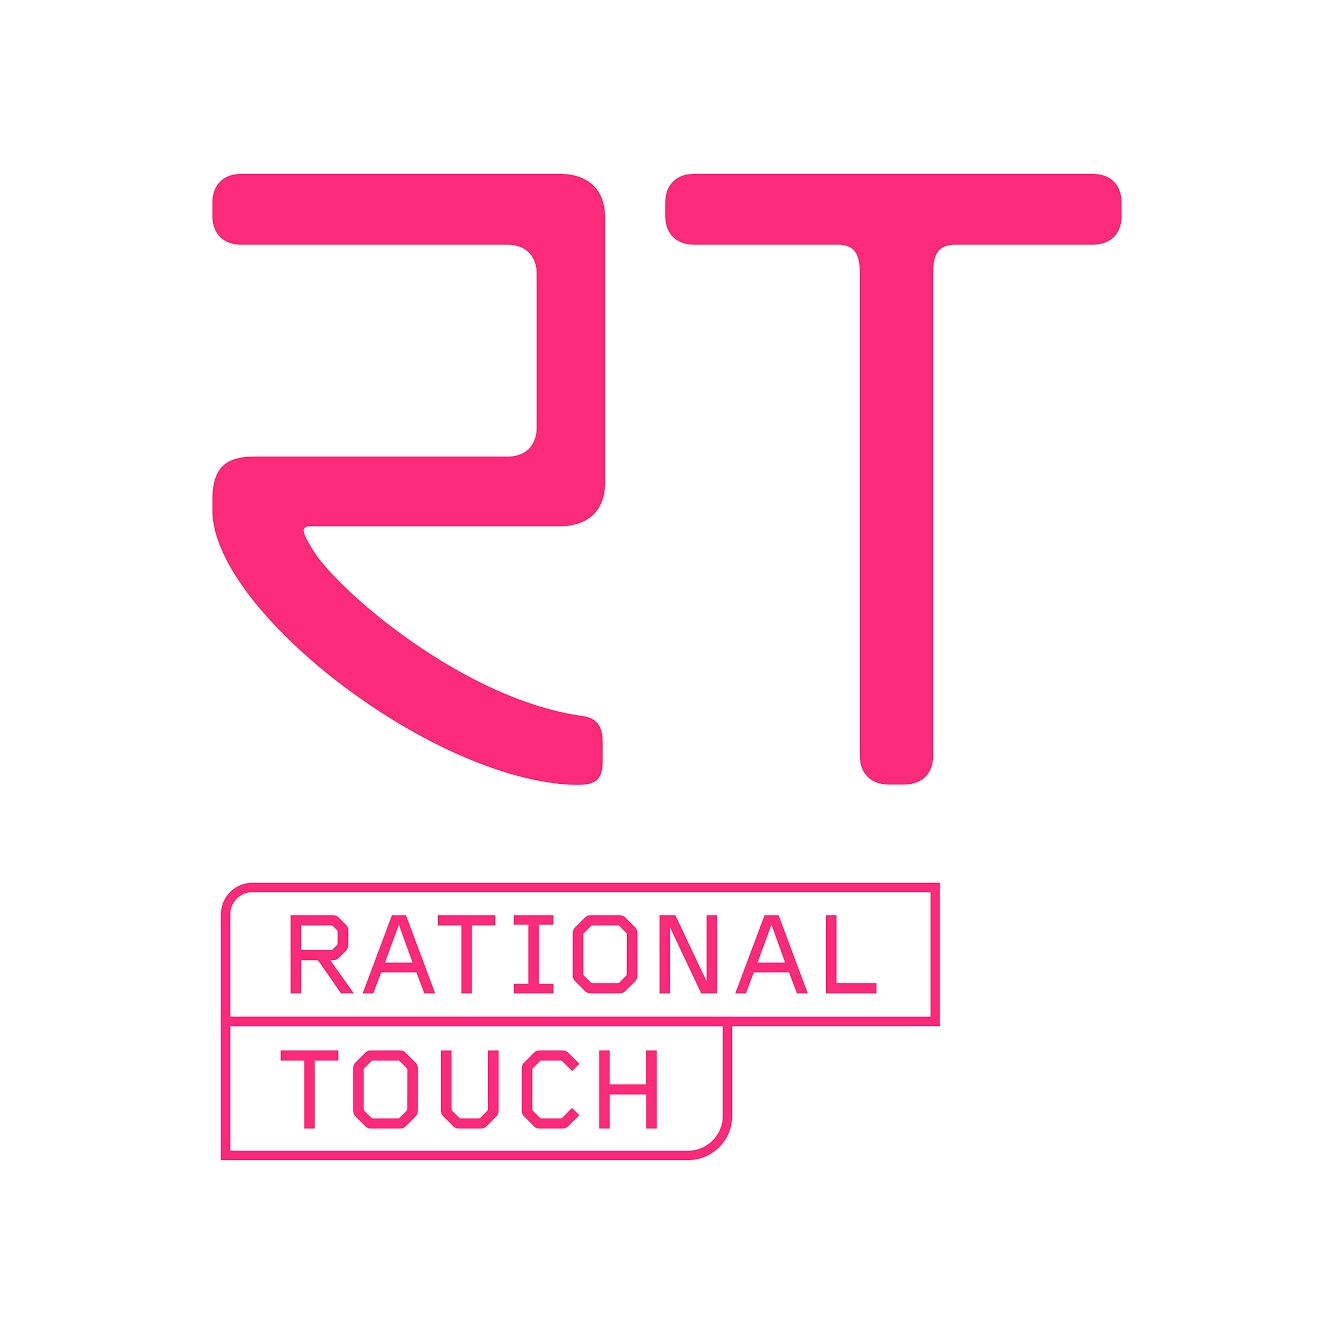 Rational Touch